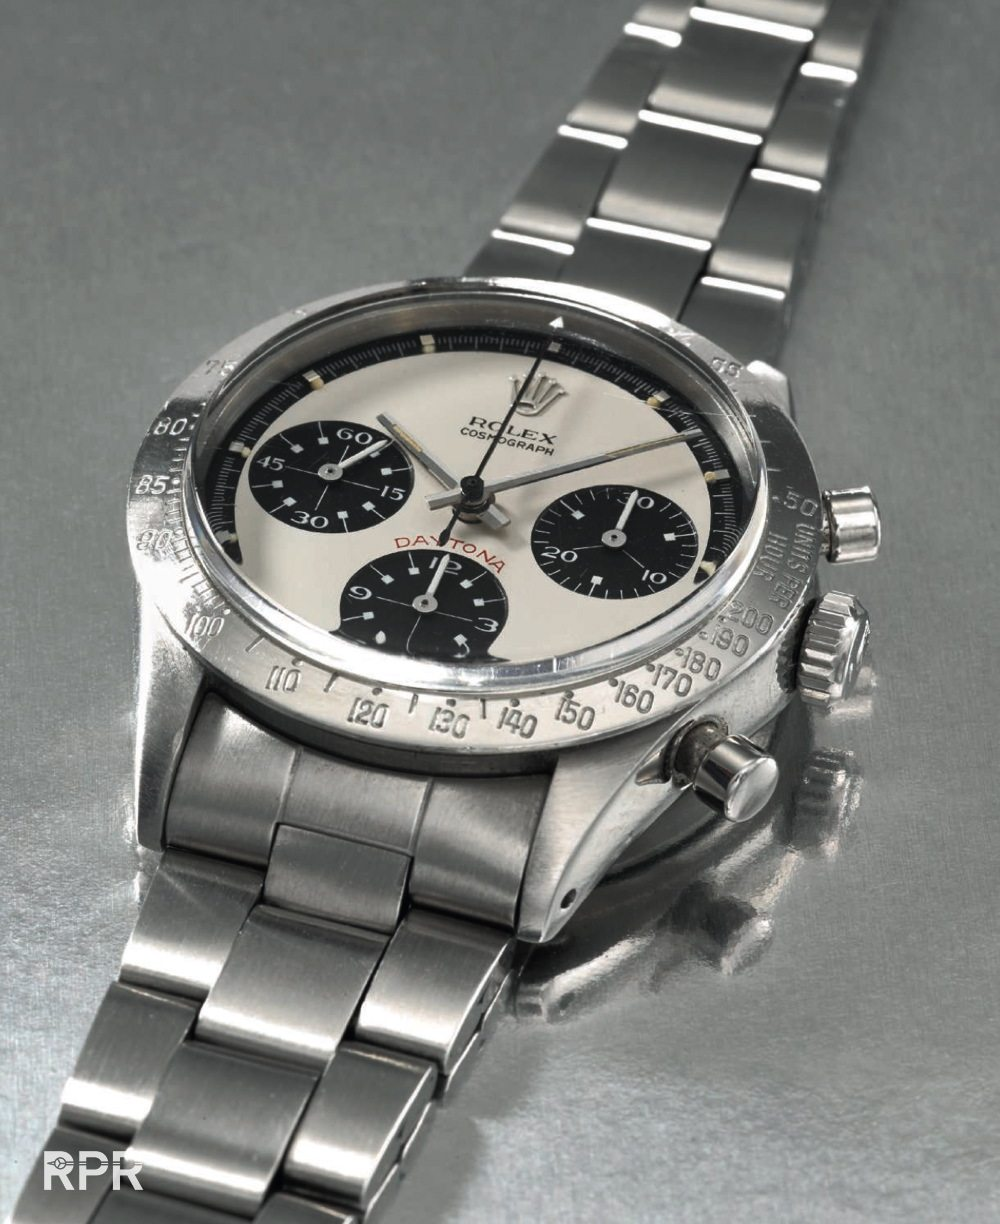 RPR_Rolex_geneva_auction_2015_95